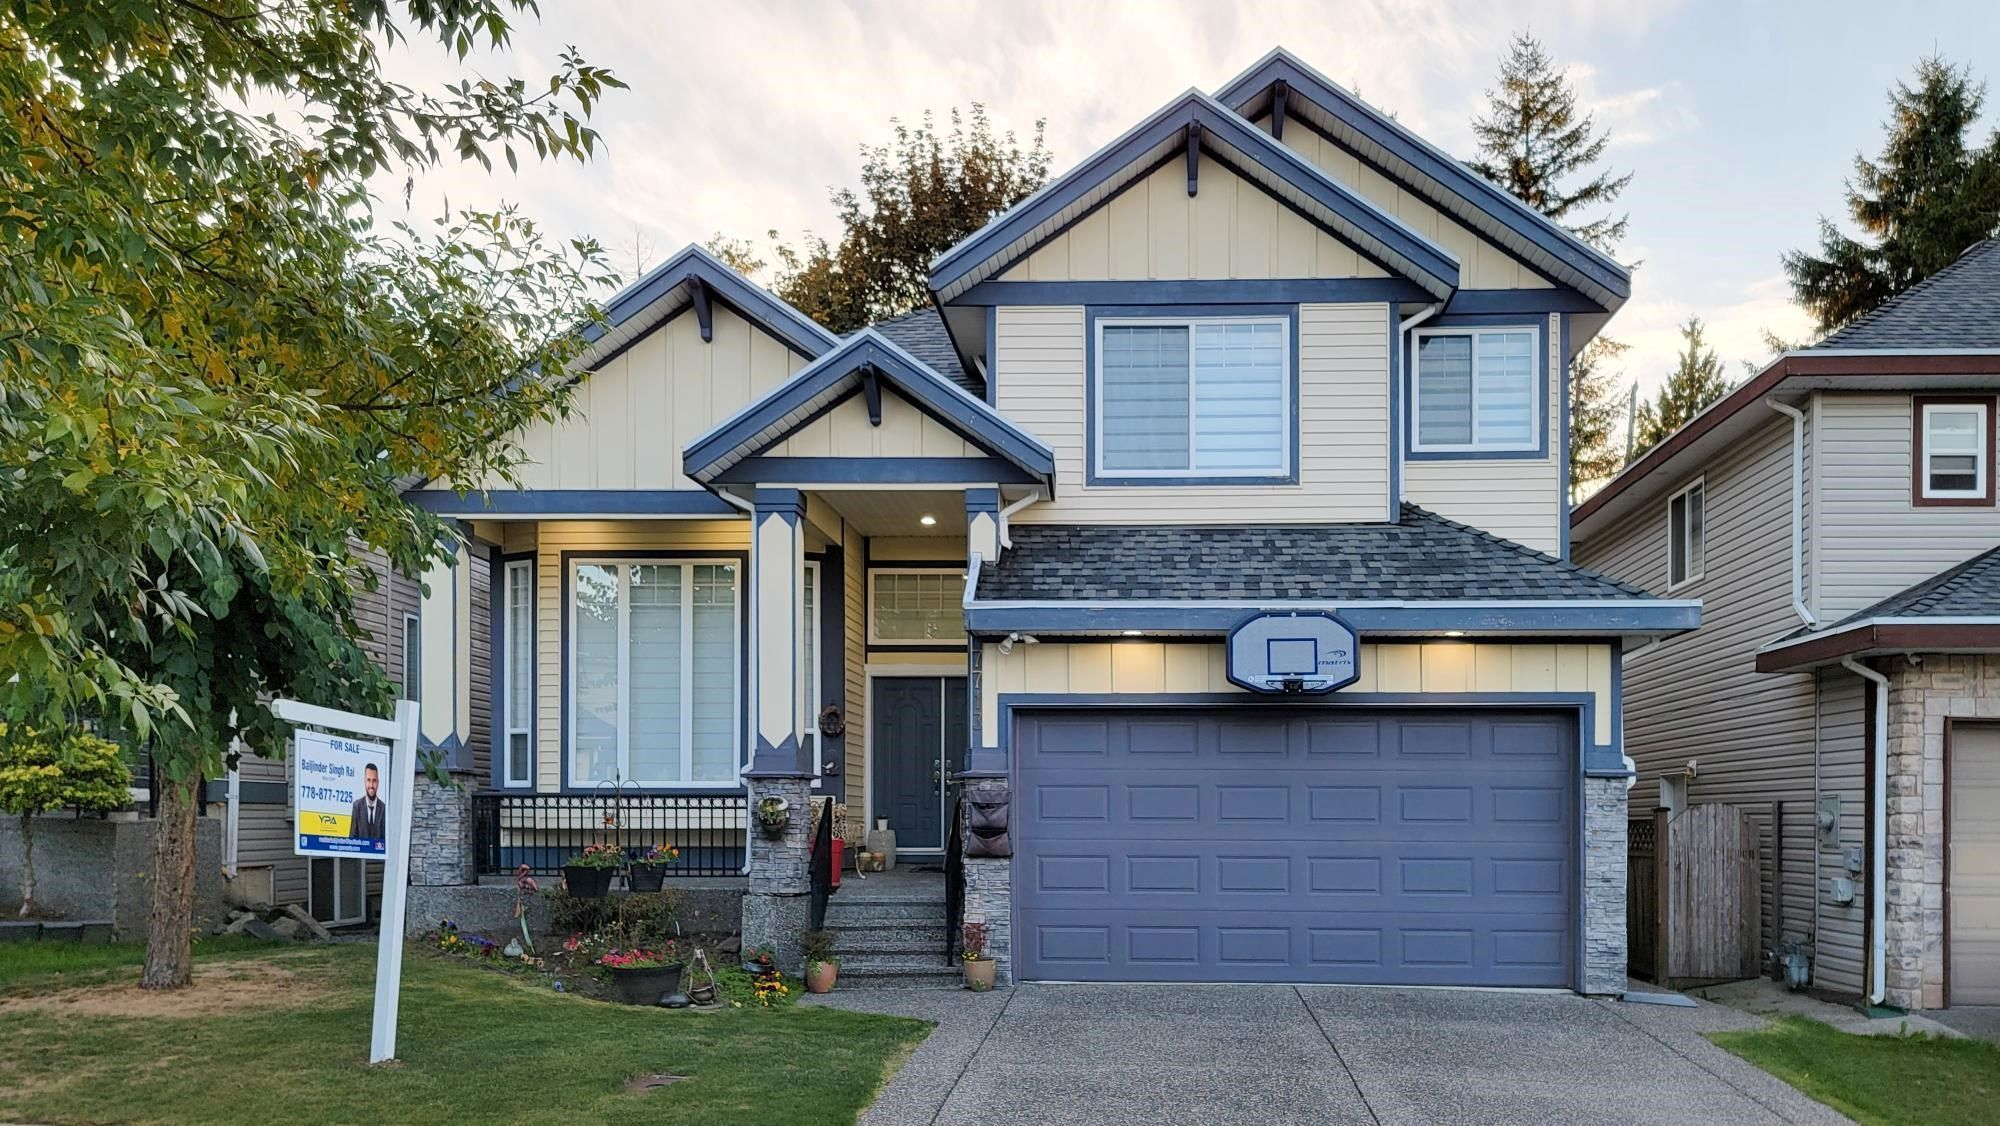 Main Photo: 7713 146 Street in Surrey: East Newton House for sale : MLS®# R2616890